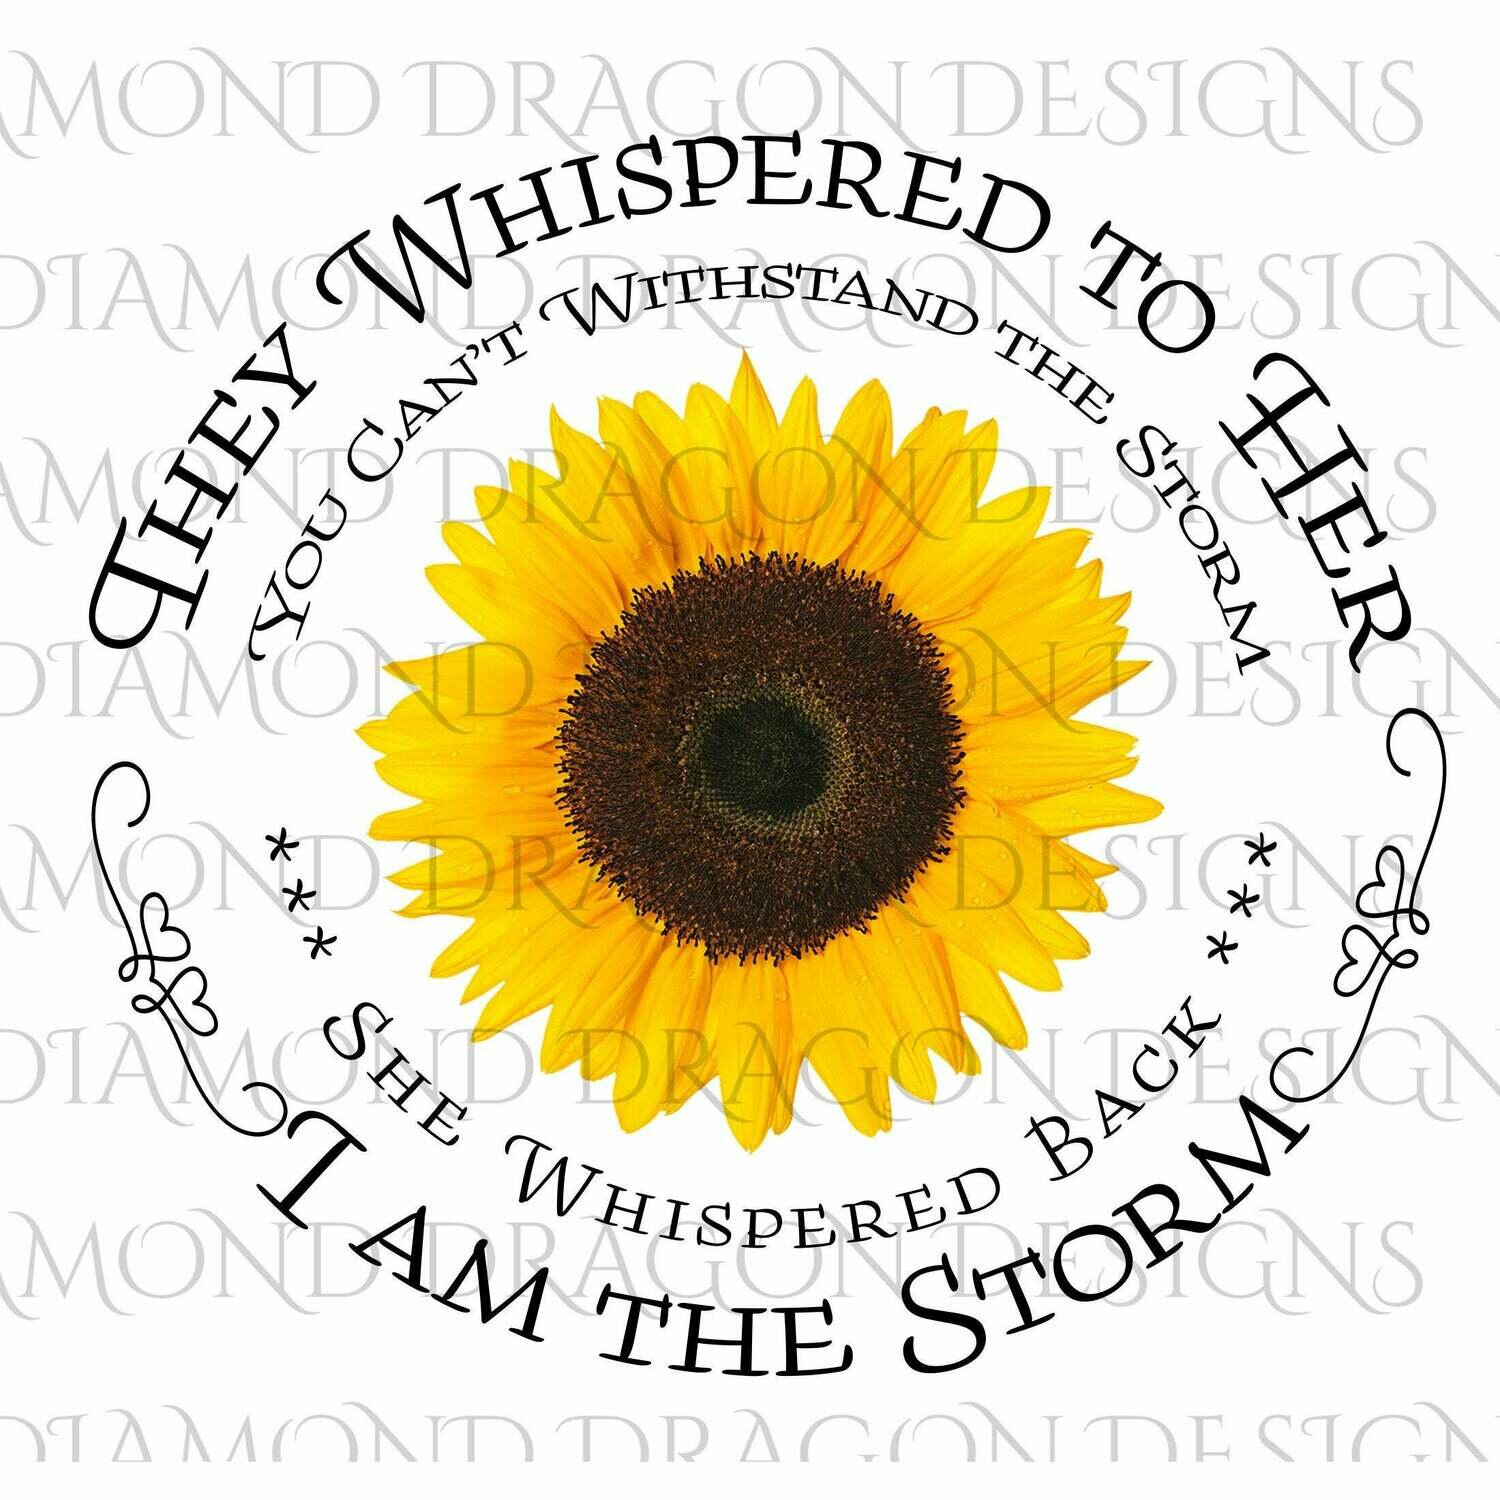 Flowers - Sunflower, They Whispered to Her, Cannot Withstand the Storm, I am the Storm, Quote, Watercolor, Digital Image